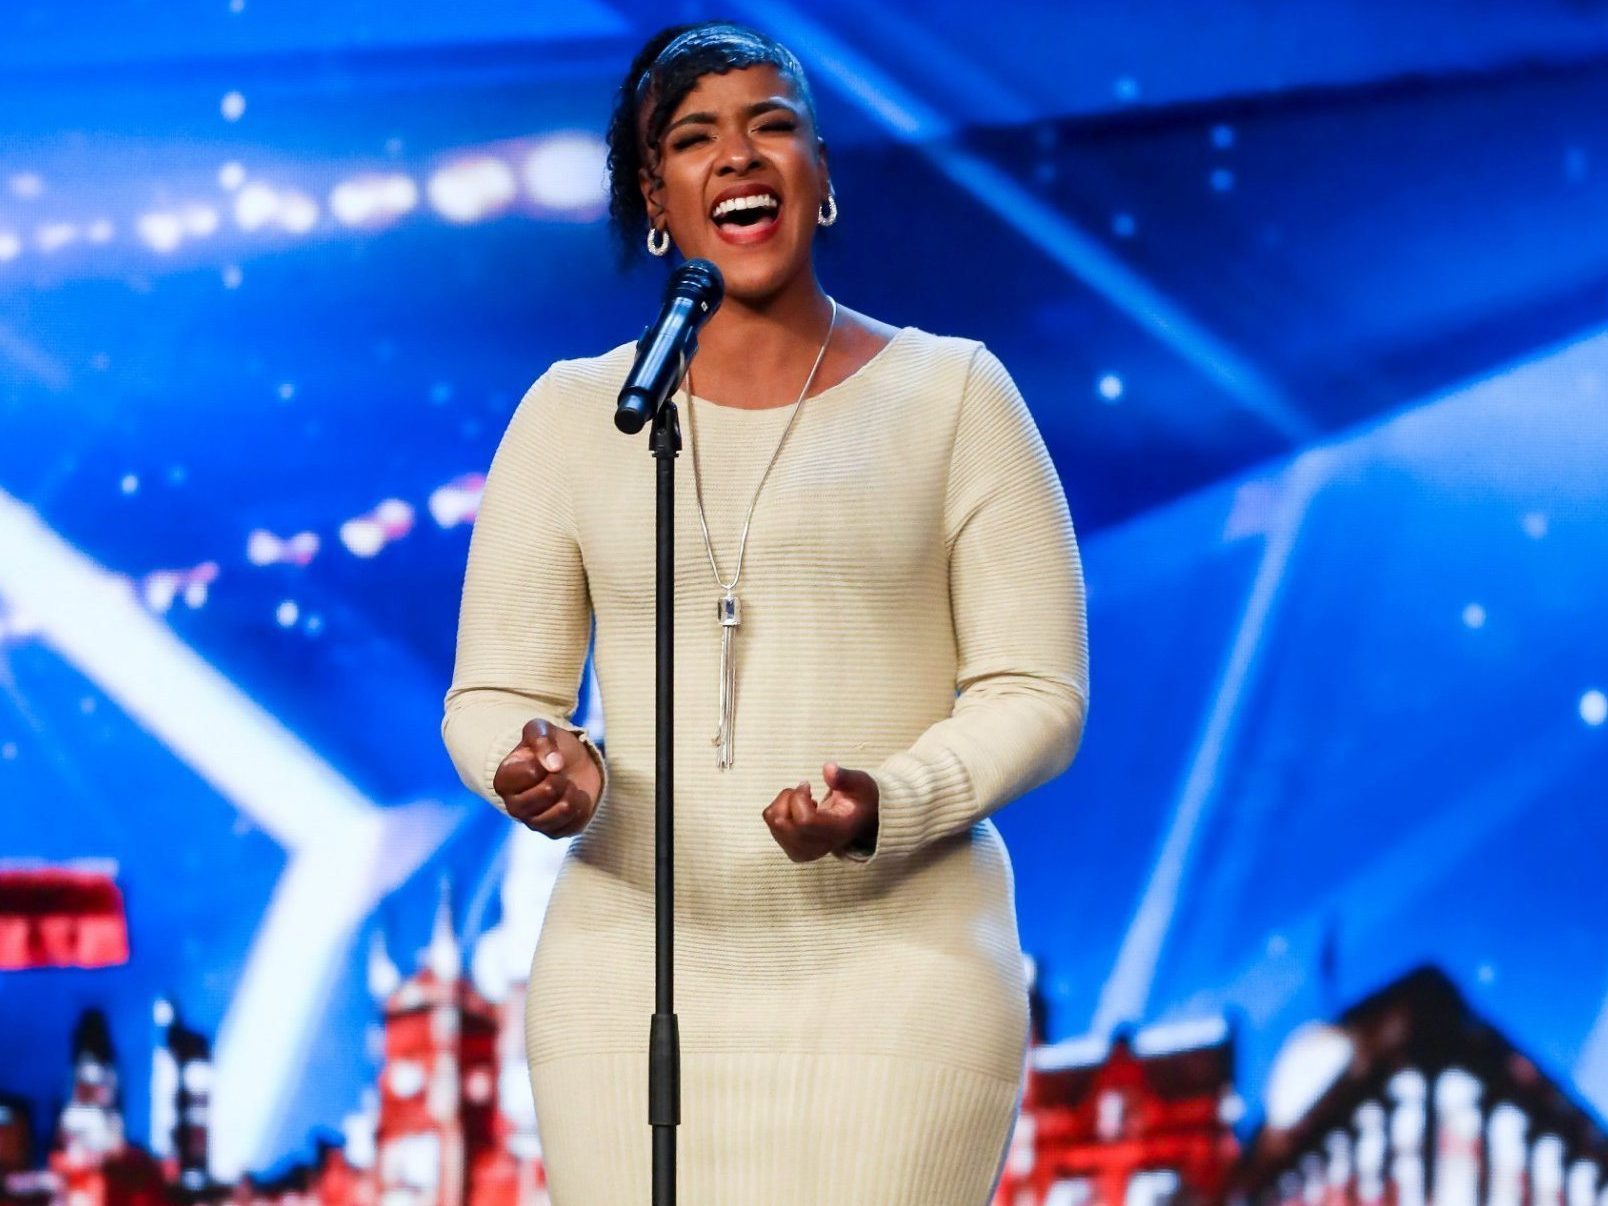 Britain's Got Talent's Leanne Mya hopes to 'inspire change' after surviving Grenfell tragedy